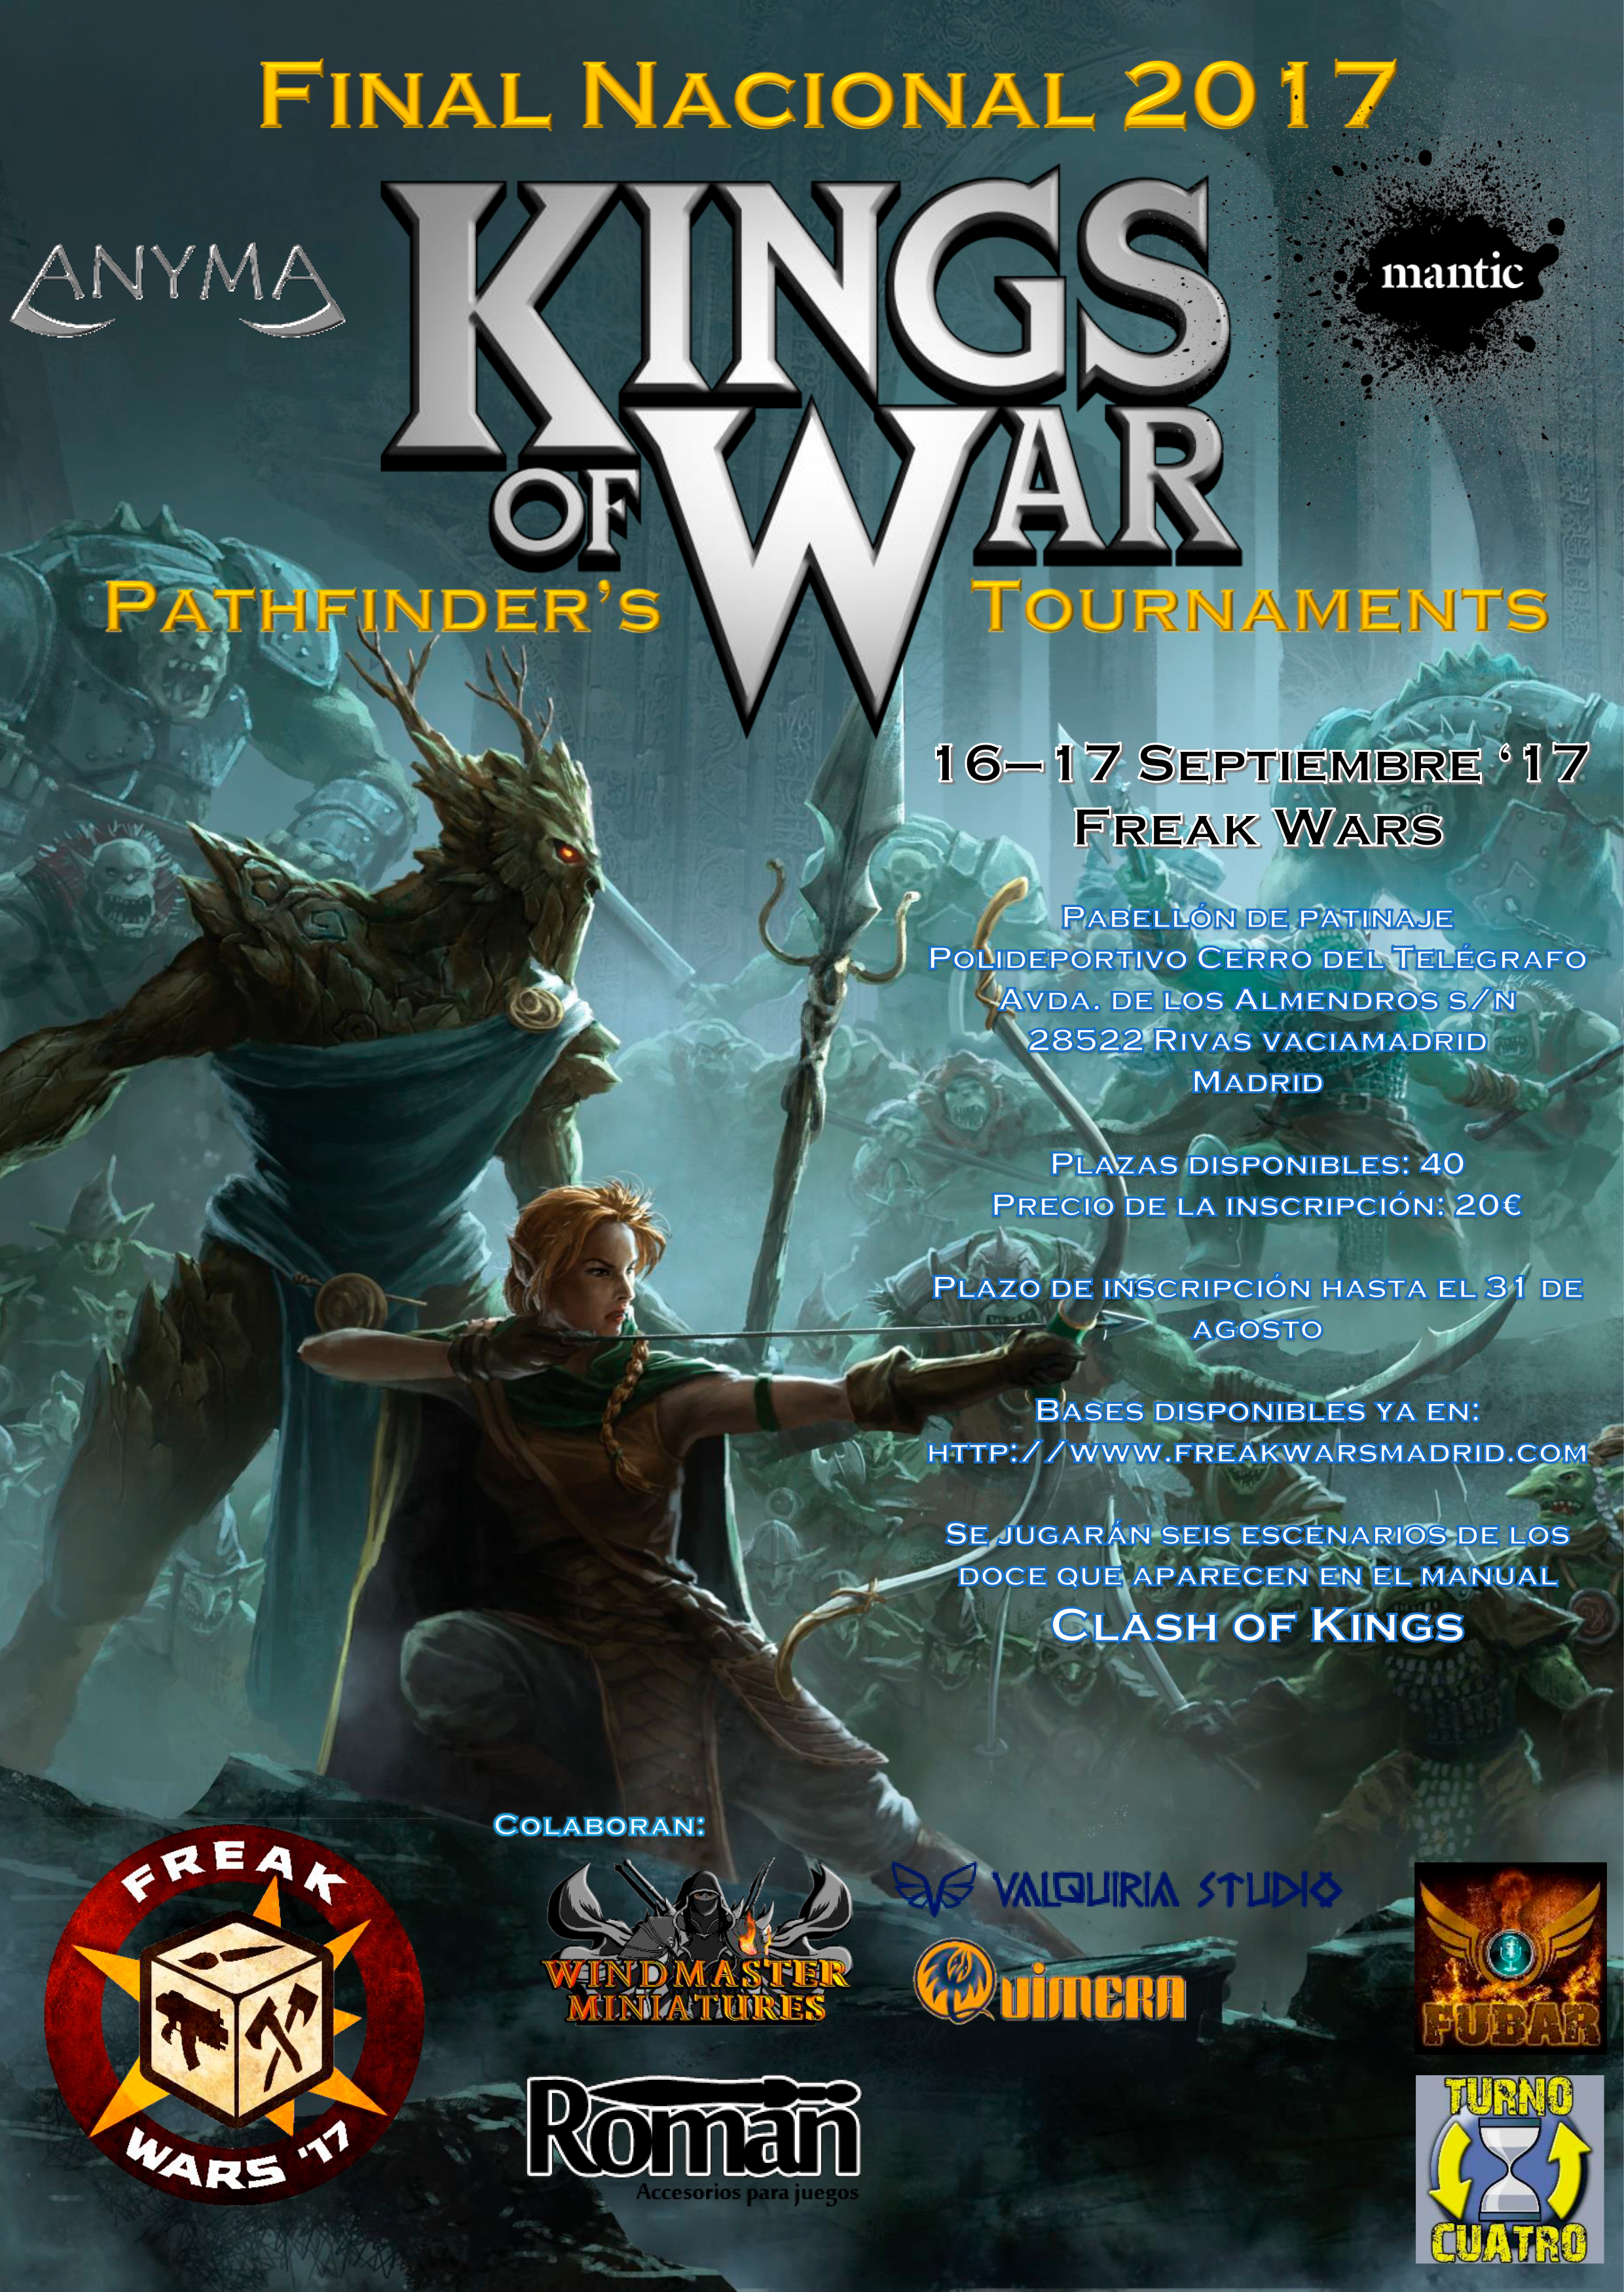 Torneo Final Nacional Kings of War 2017